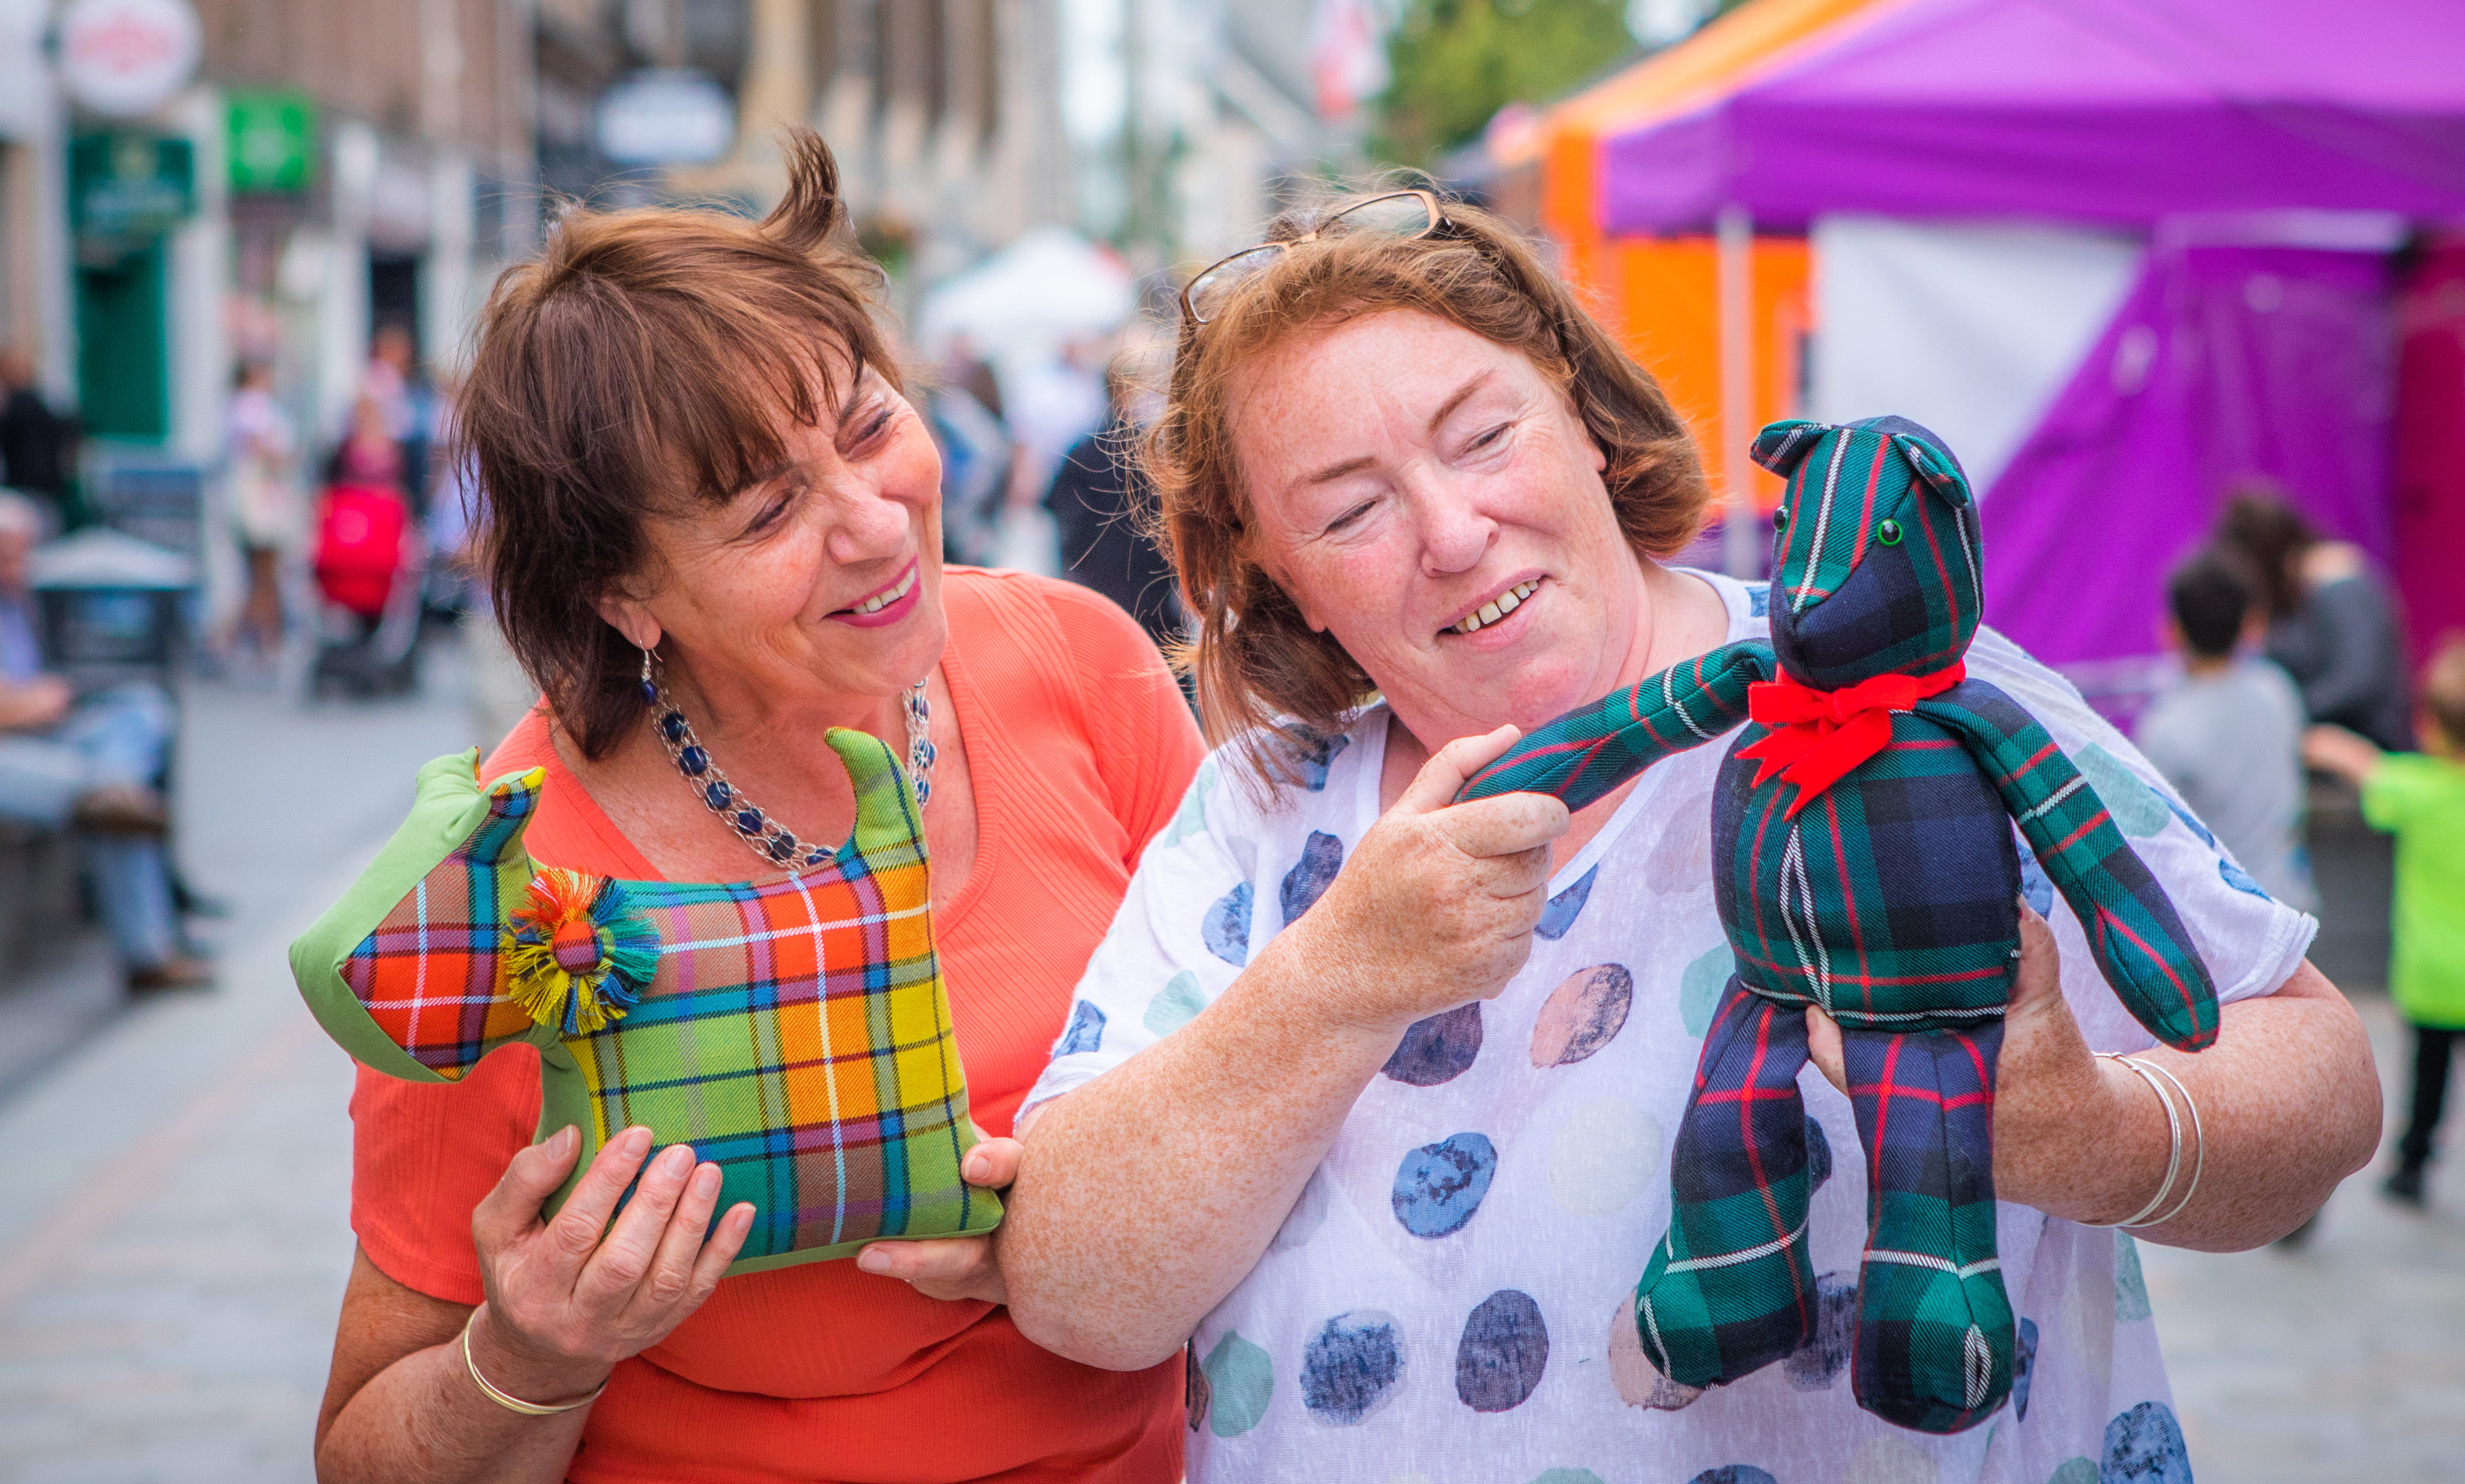 Erica Ritch (right from Broughty Ferry) alongside friend Maggie Nicol (left, from Brechin); Erica runs 'Ritch Pickings' and makes gifts from off cuts of tartan that she then sells, with the proceeds going to Great Ormond Street.